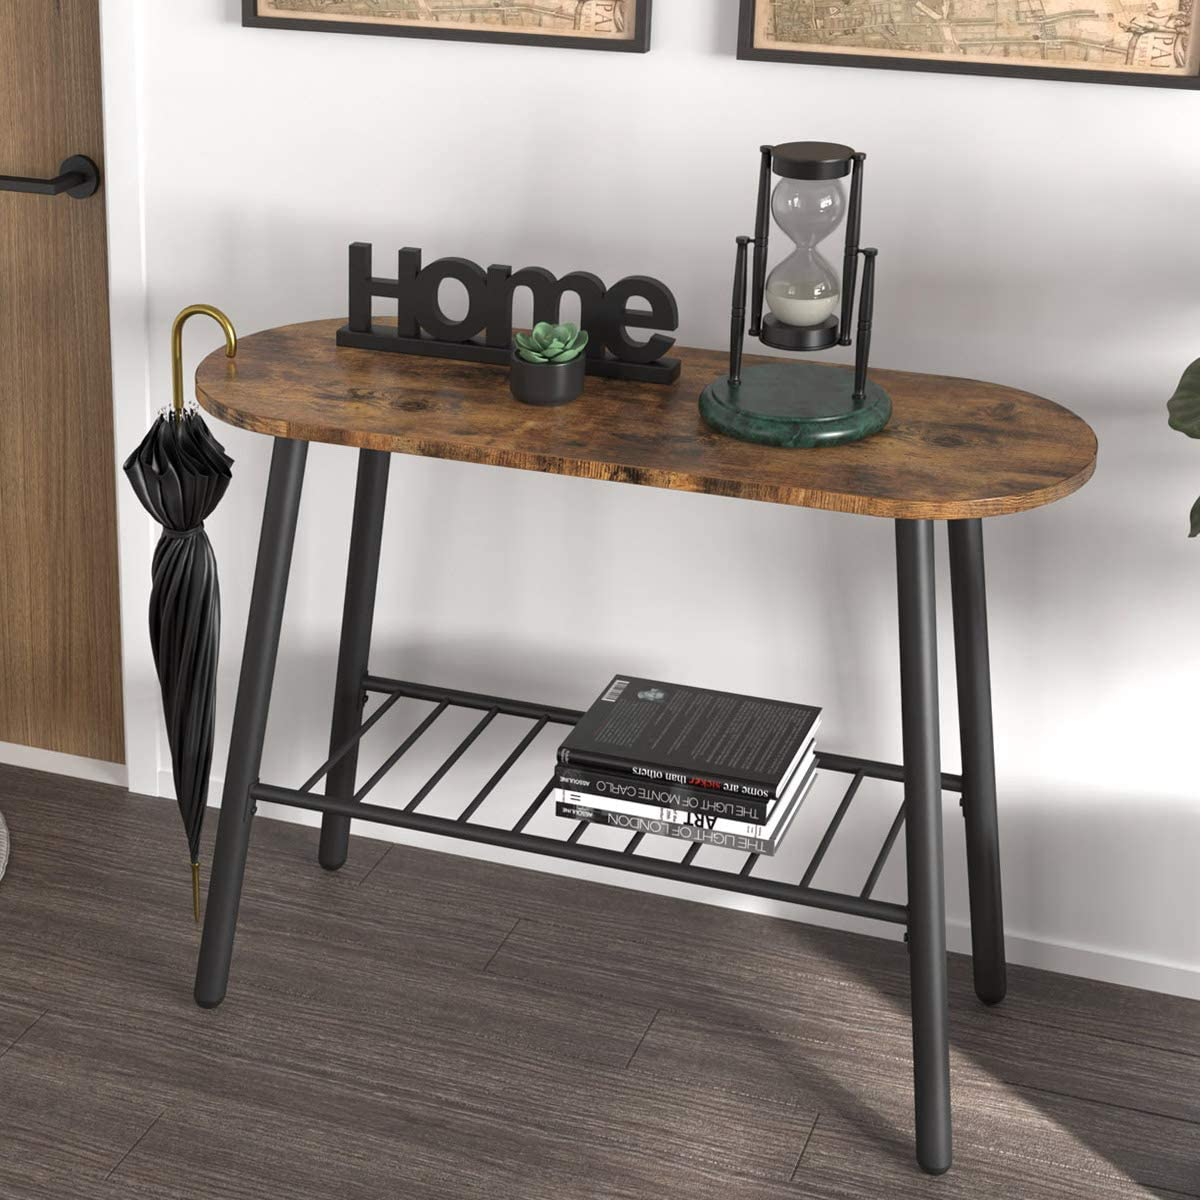 IRONCK Industrial Console Table for Entryway Hallway Table with Storage Shelf, 2 Tier Sofa Table for Living Room Bedroom Entryway Study Balcony Hallway Workshop, Easy Assembly